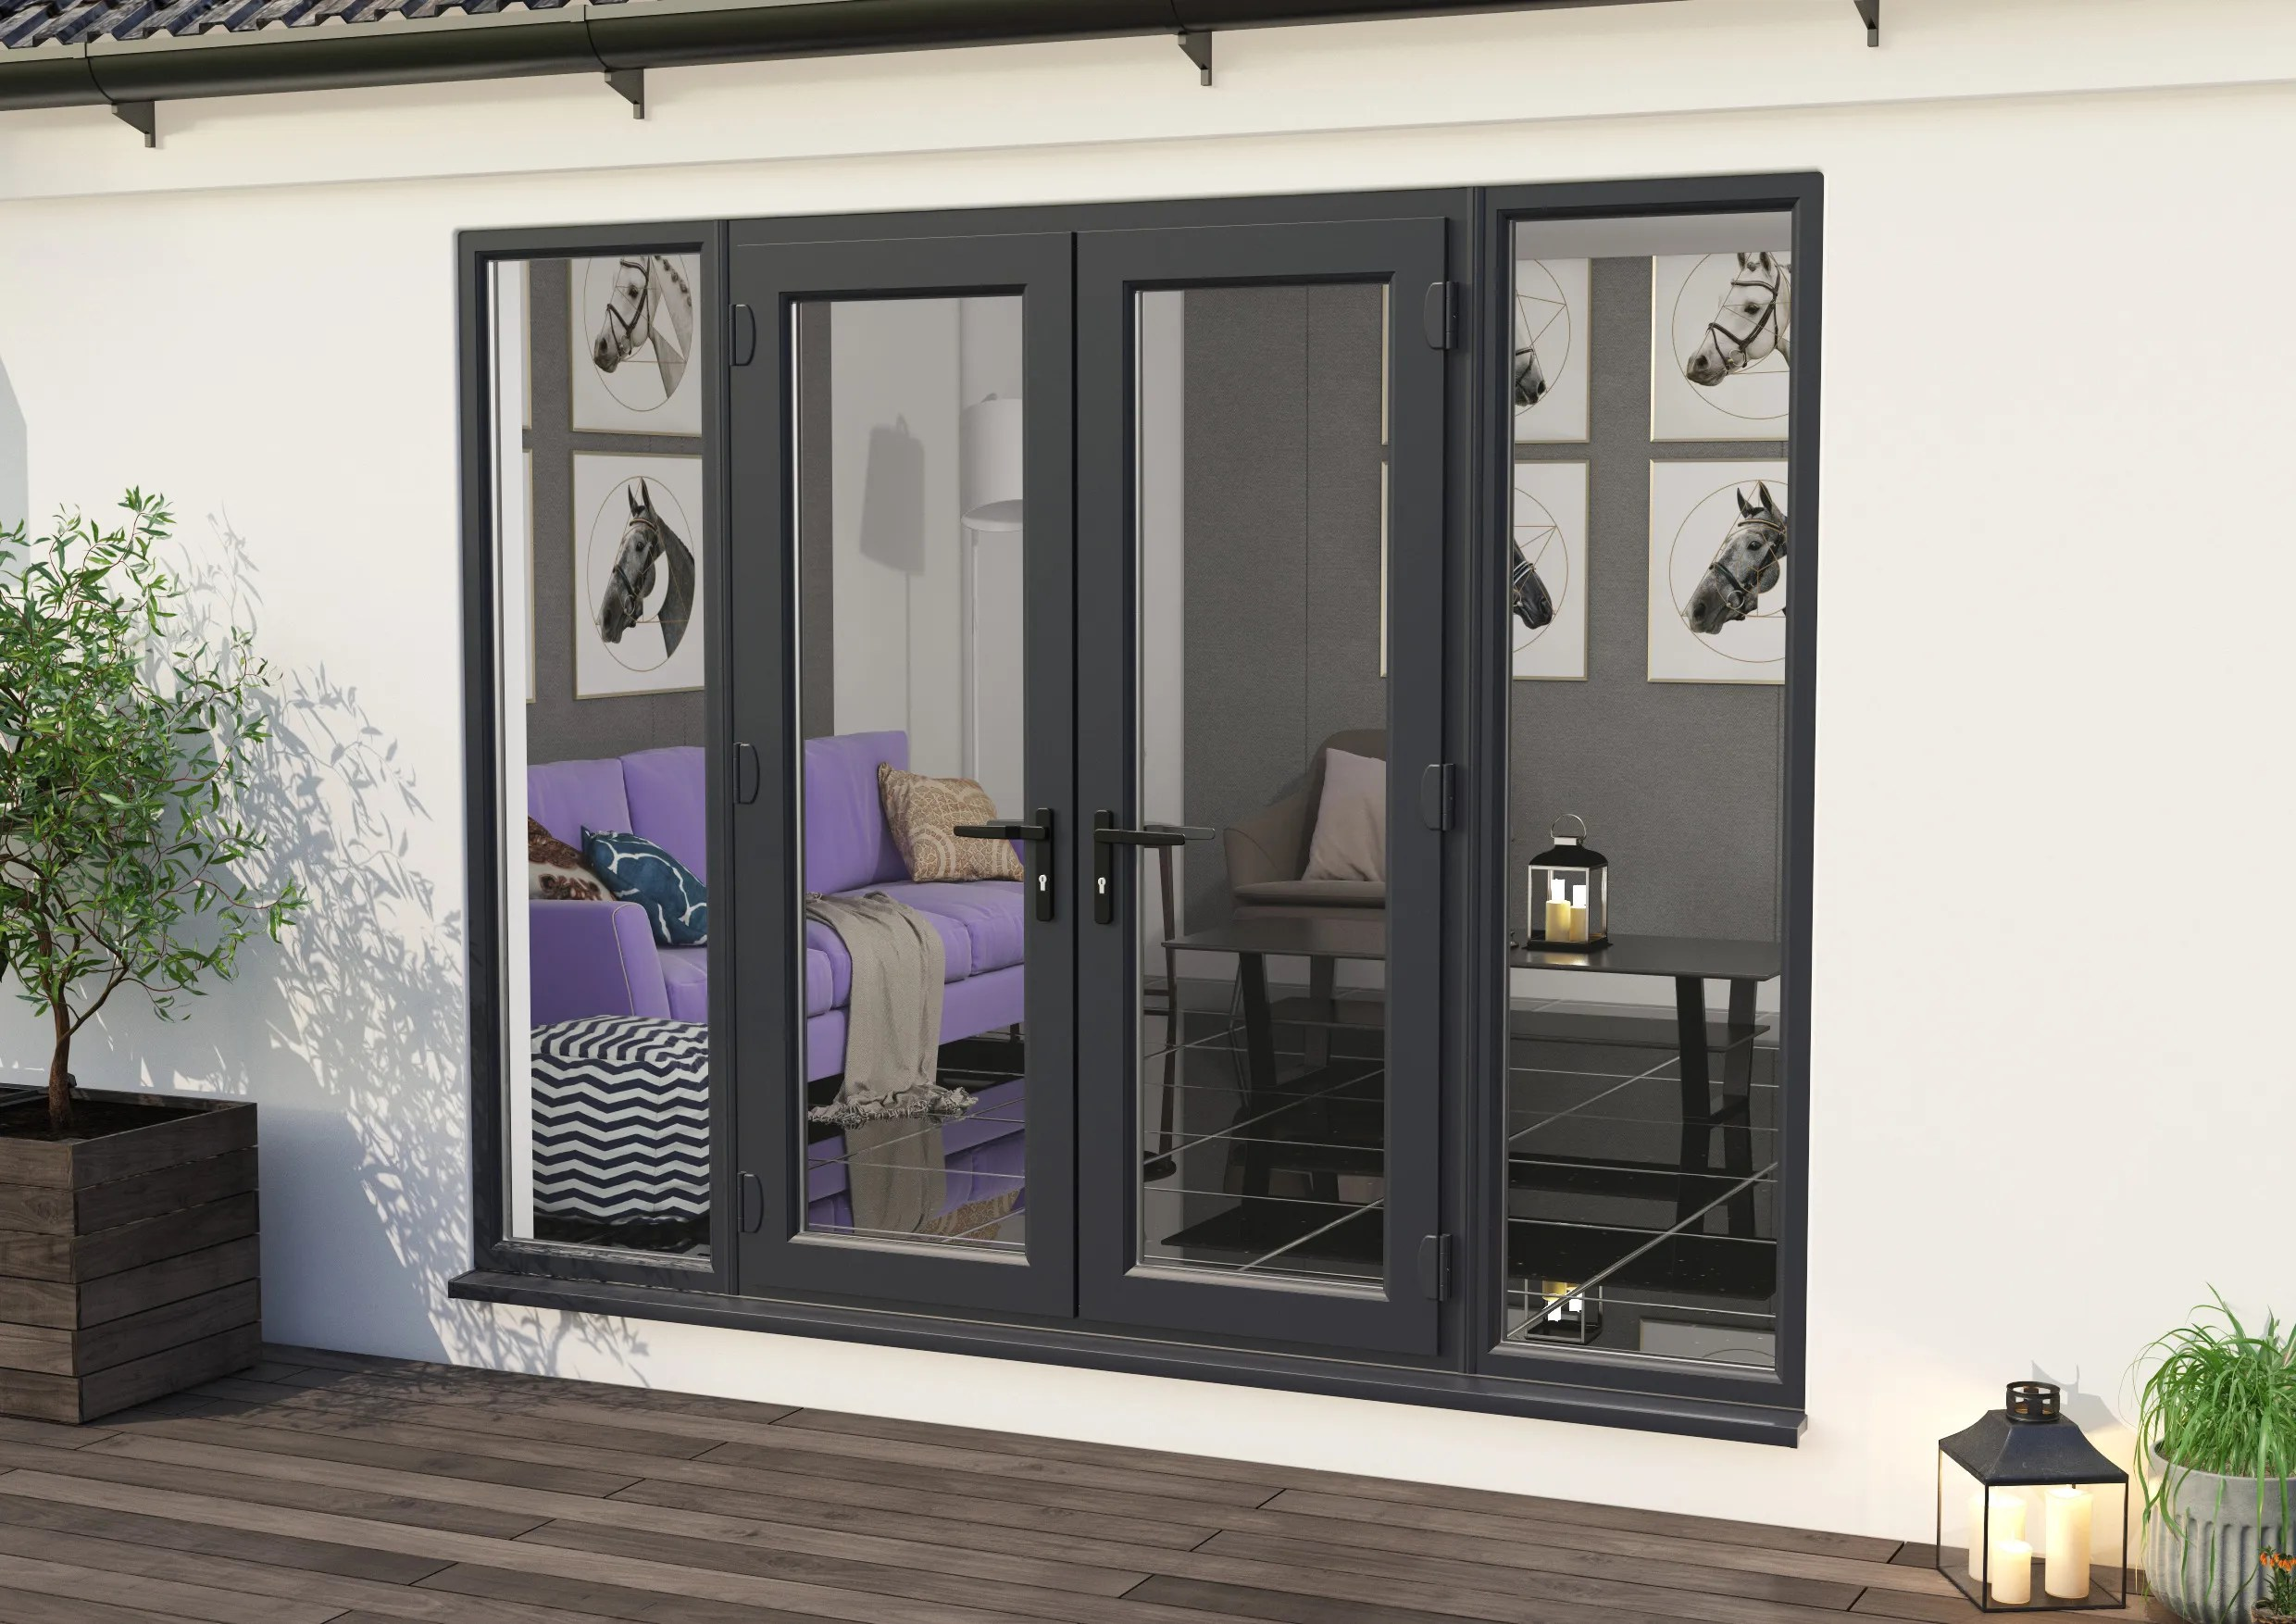 2400mm part q upvc grey outer white inner french doors 1200mm doors 2 x 600mm sidelights